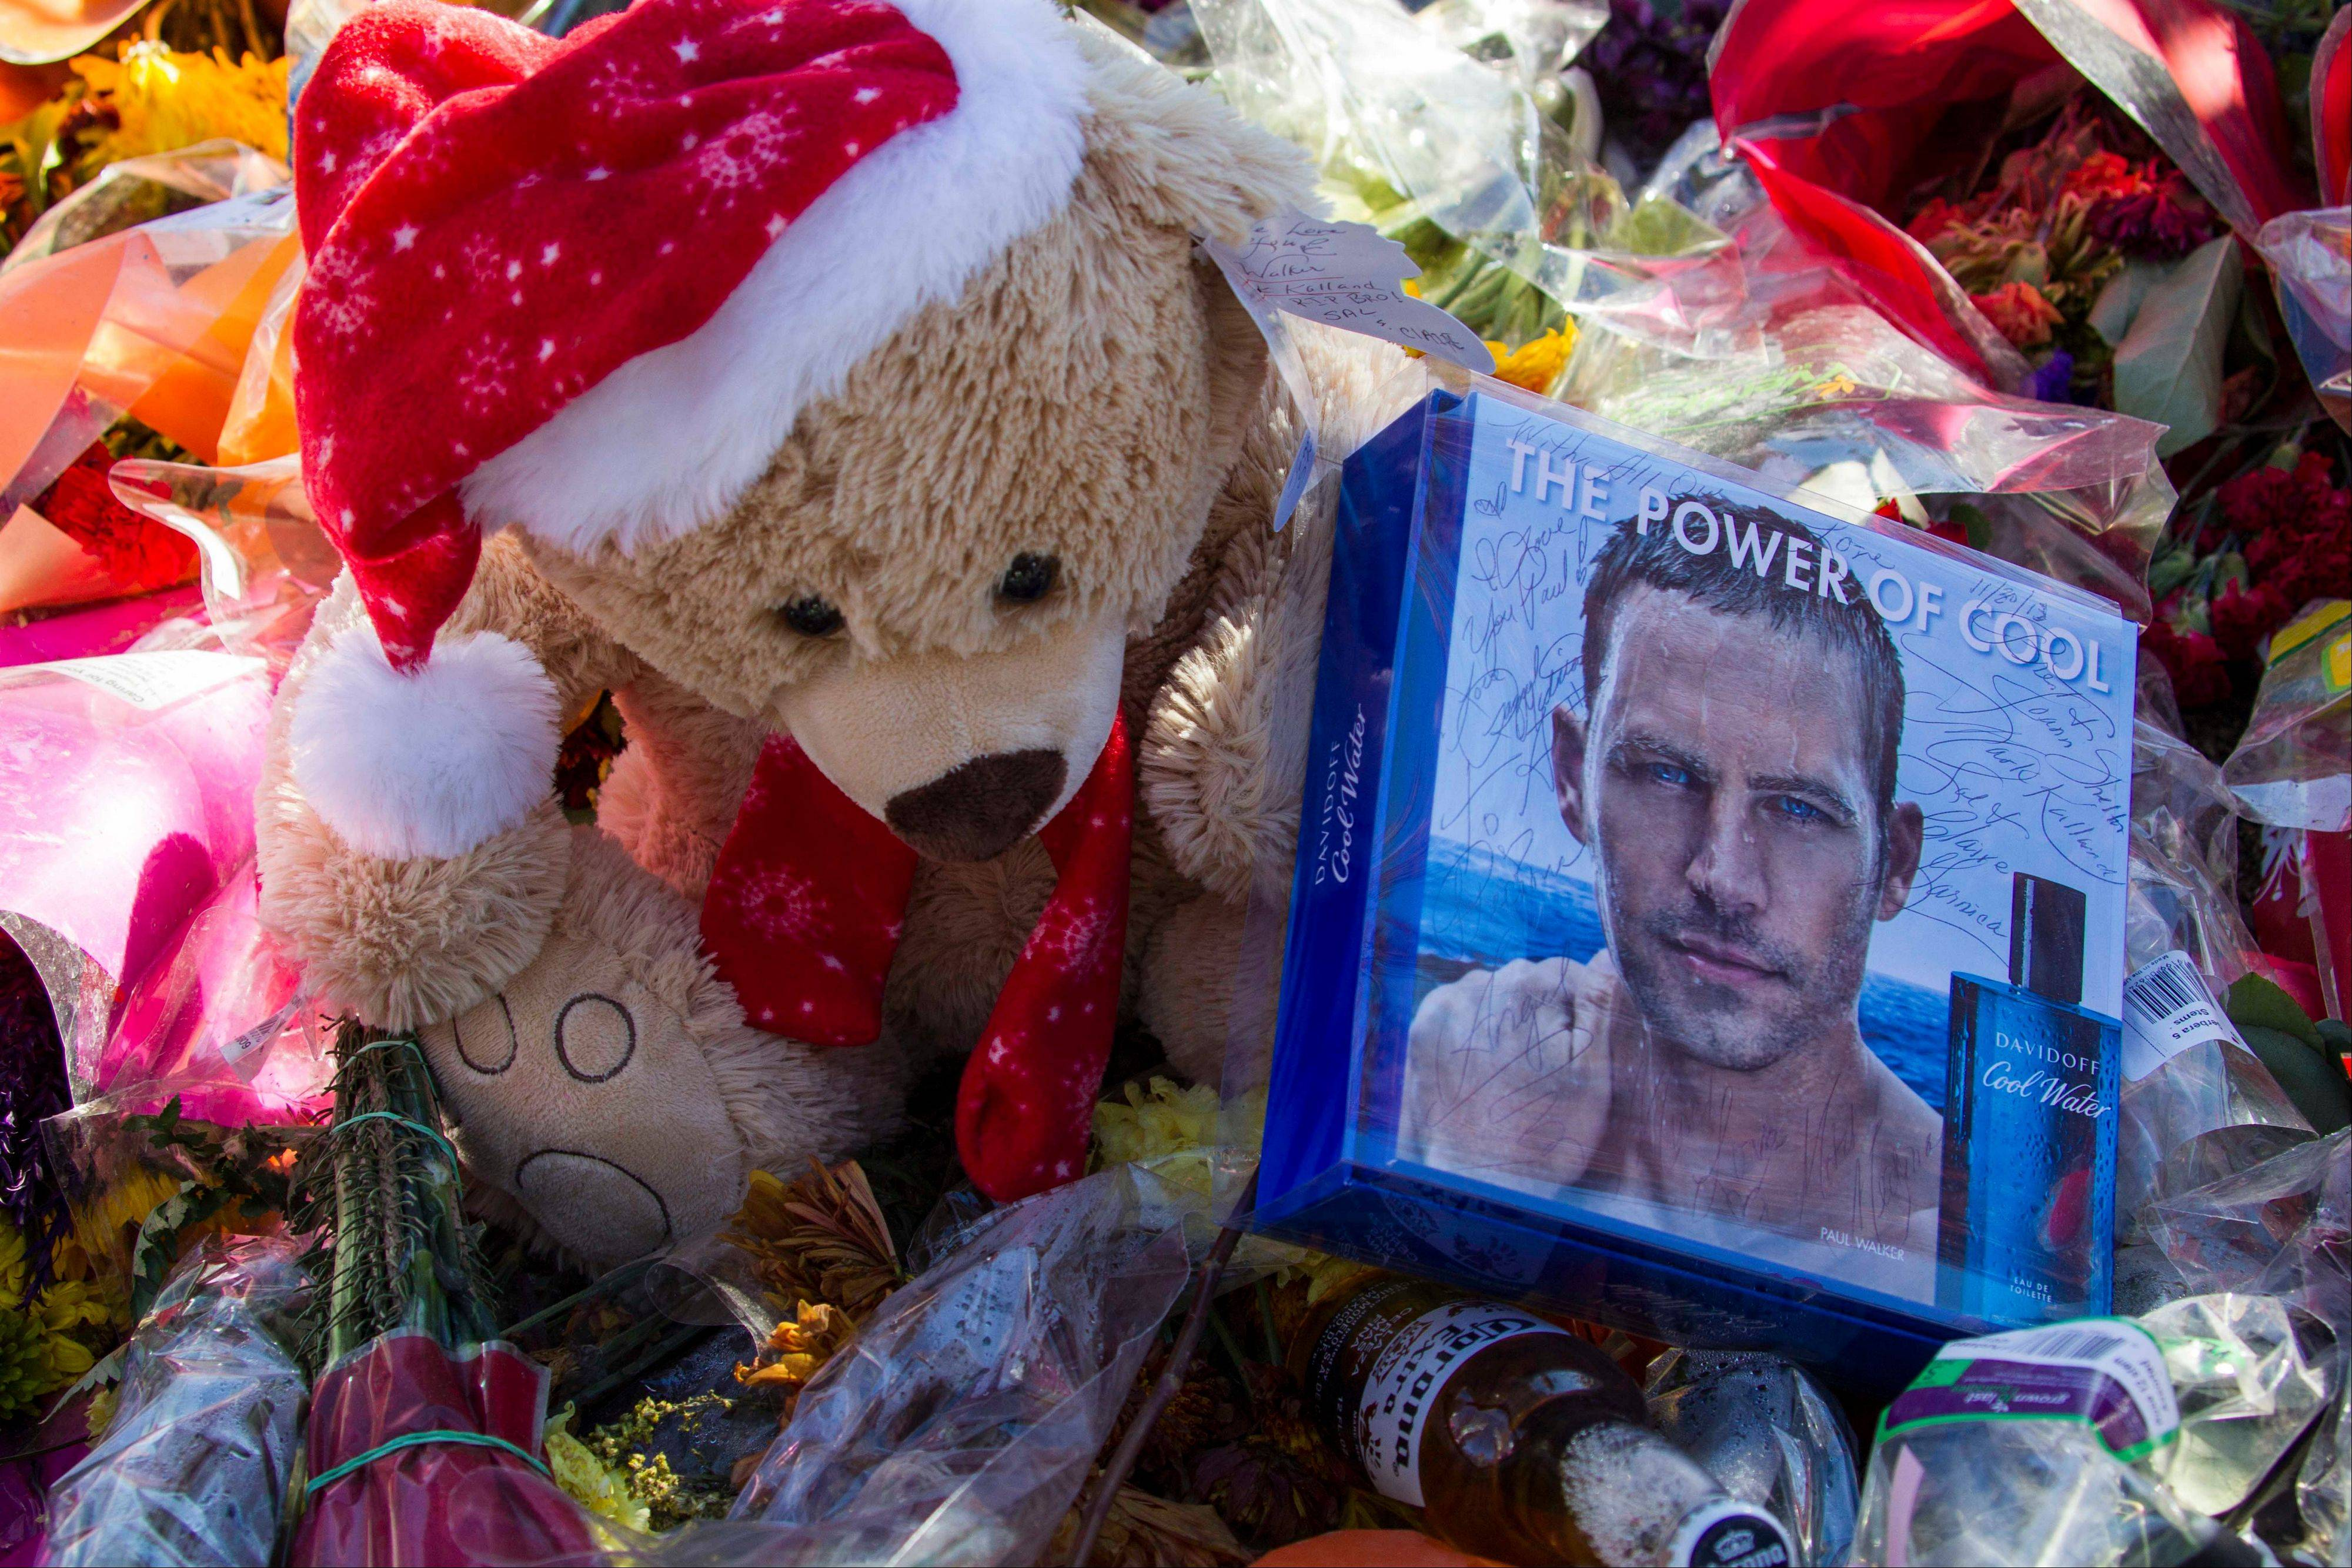 Flowers and messages are left at a memorial rally and car cruise in Valencia, Calif., Sunday to remember actor Paul Walker and his friend Roger Rodas, who died in a fiery car crash last Saturday.